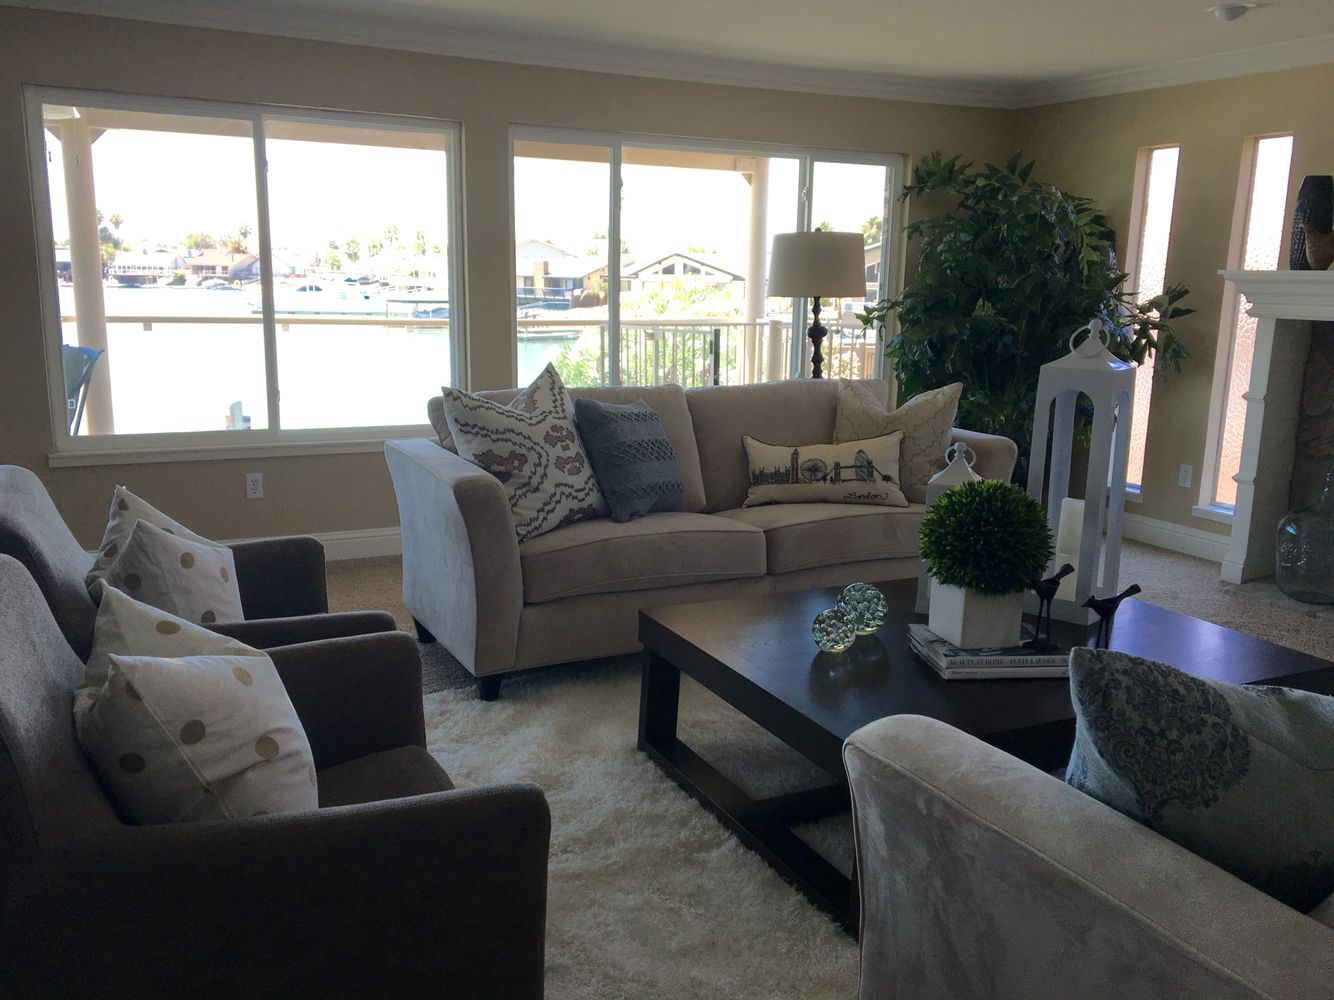 Staging, Sunnies, Role Play. Find This Pin And More On Sunny And Chair ...